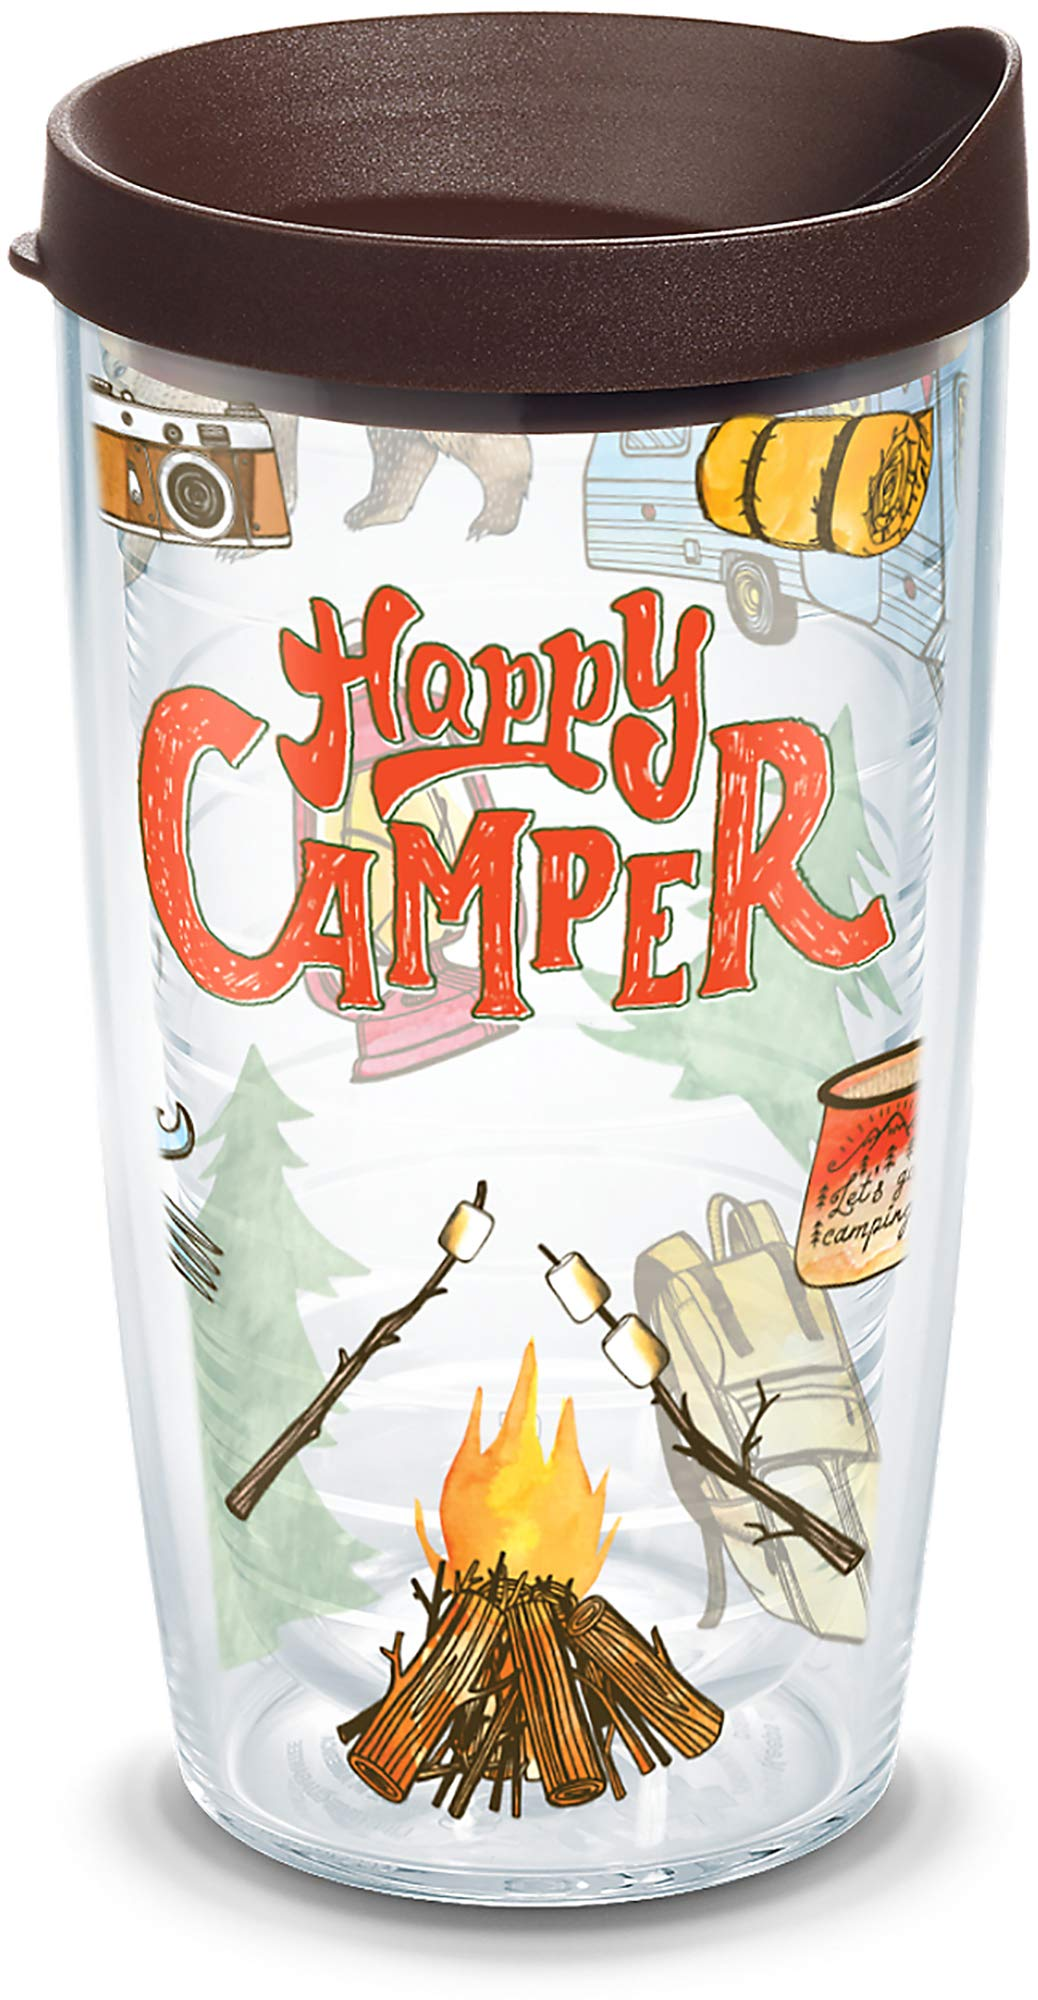 Tervis 1218220 Happy Camper Tumbler with Wrap and Brown Lid 16oz, Clear